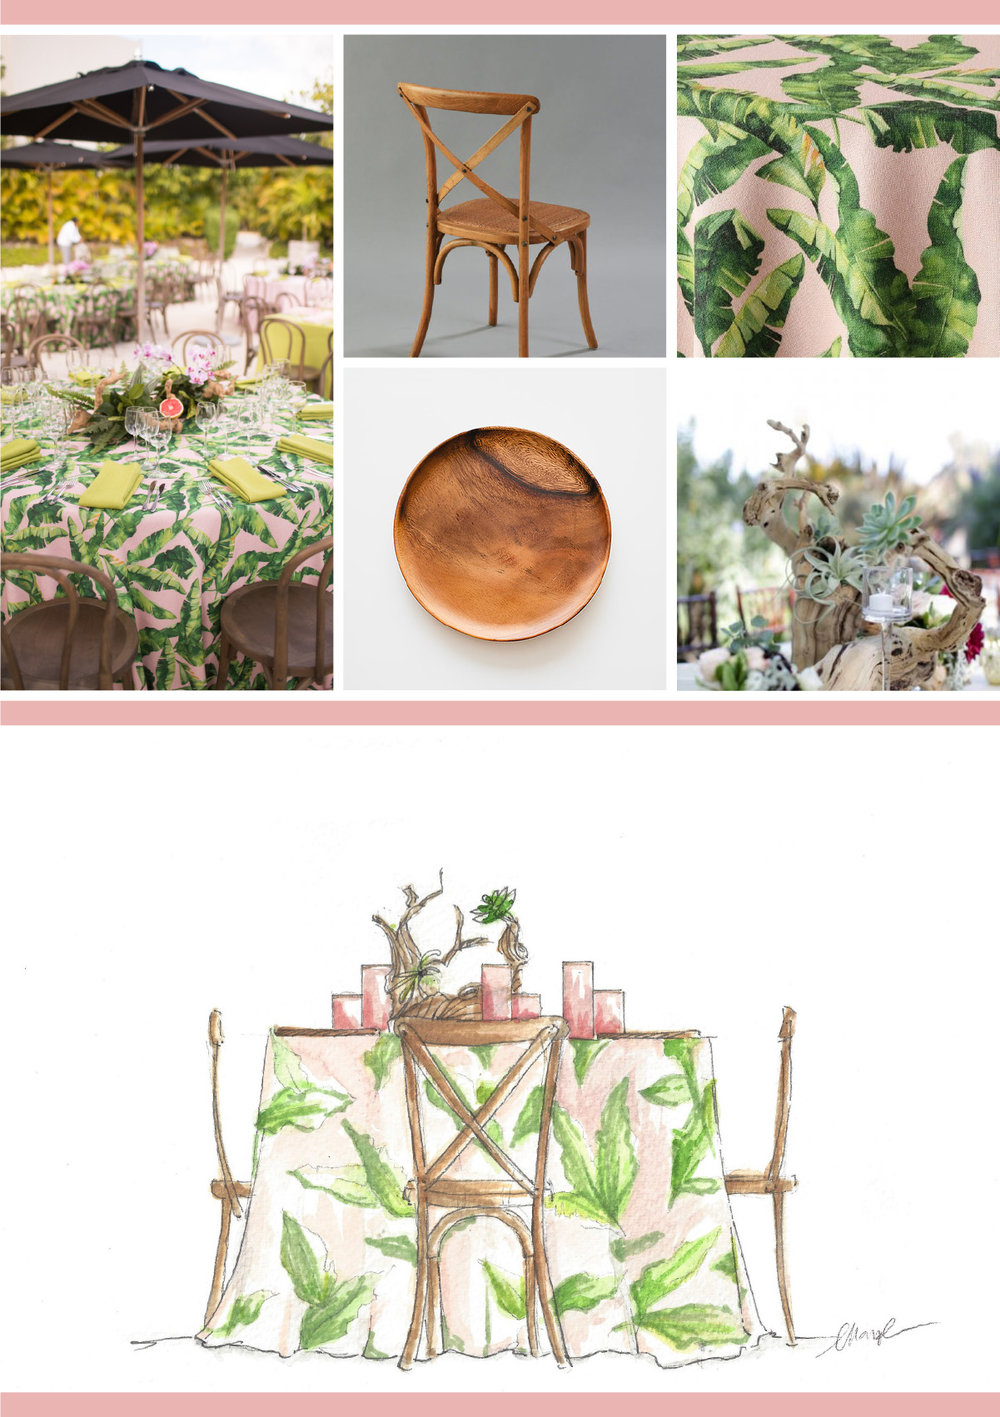 4-event-wedding-design-sketching-pinterest-creatives-skill-set.jpg